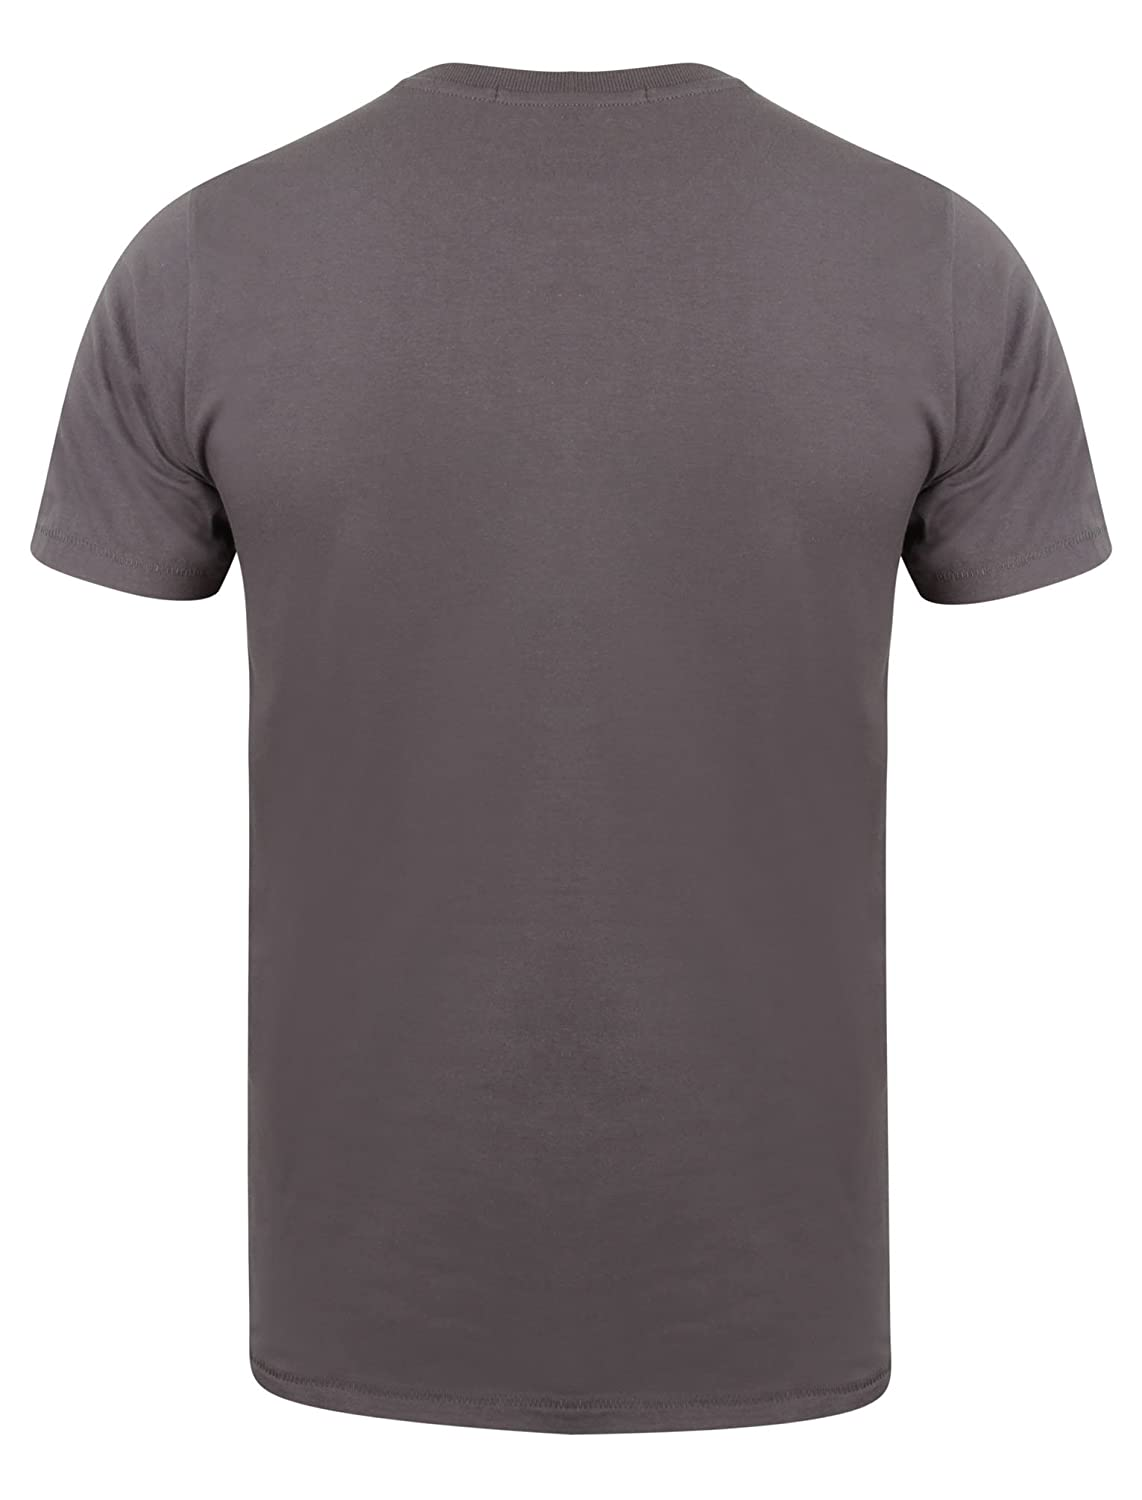 Tokyo Laundry Willwood 3 Pack t-Shirts in Ivory//Nocturne//Slate S